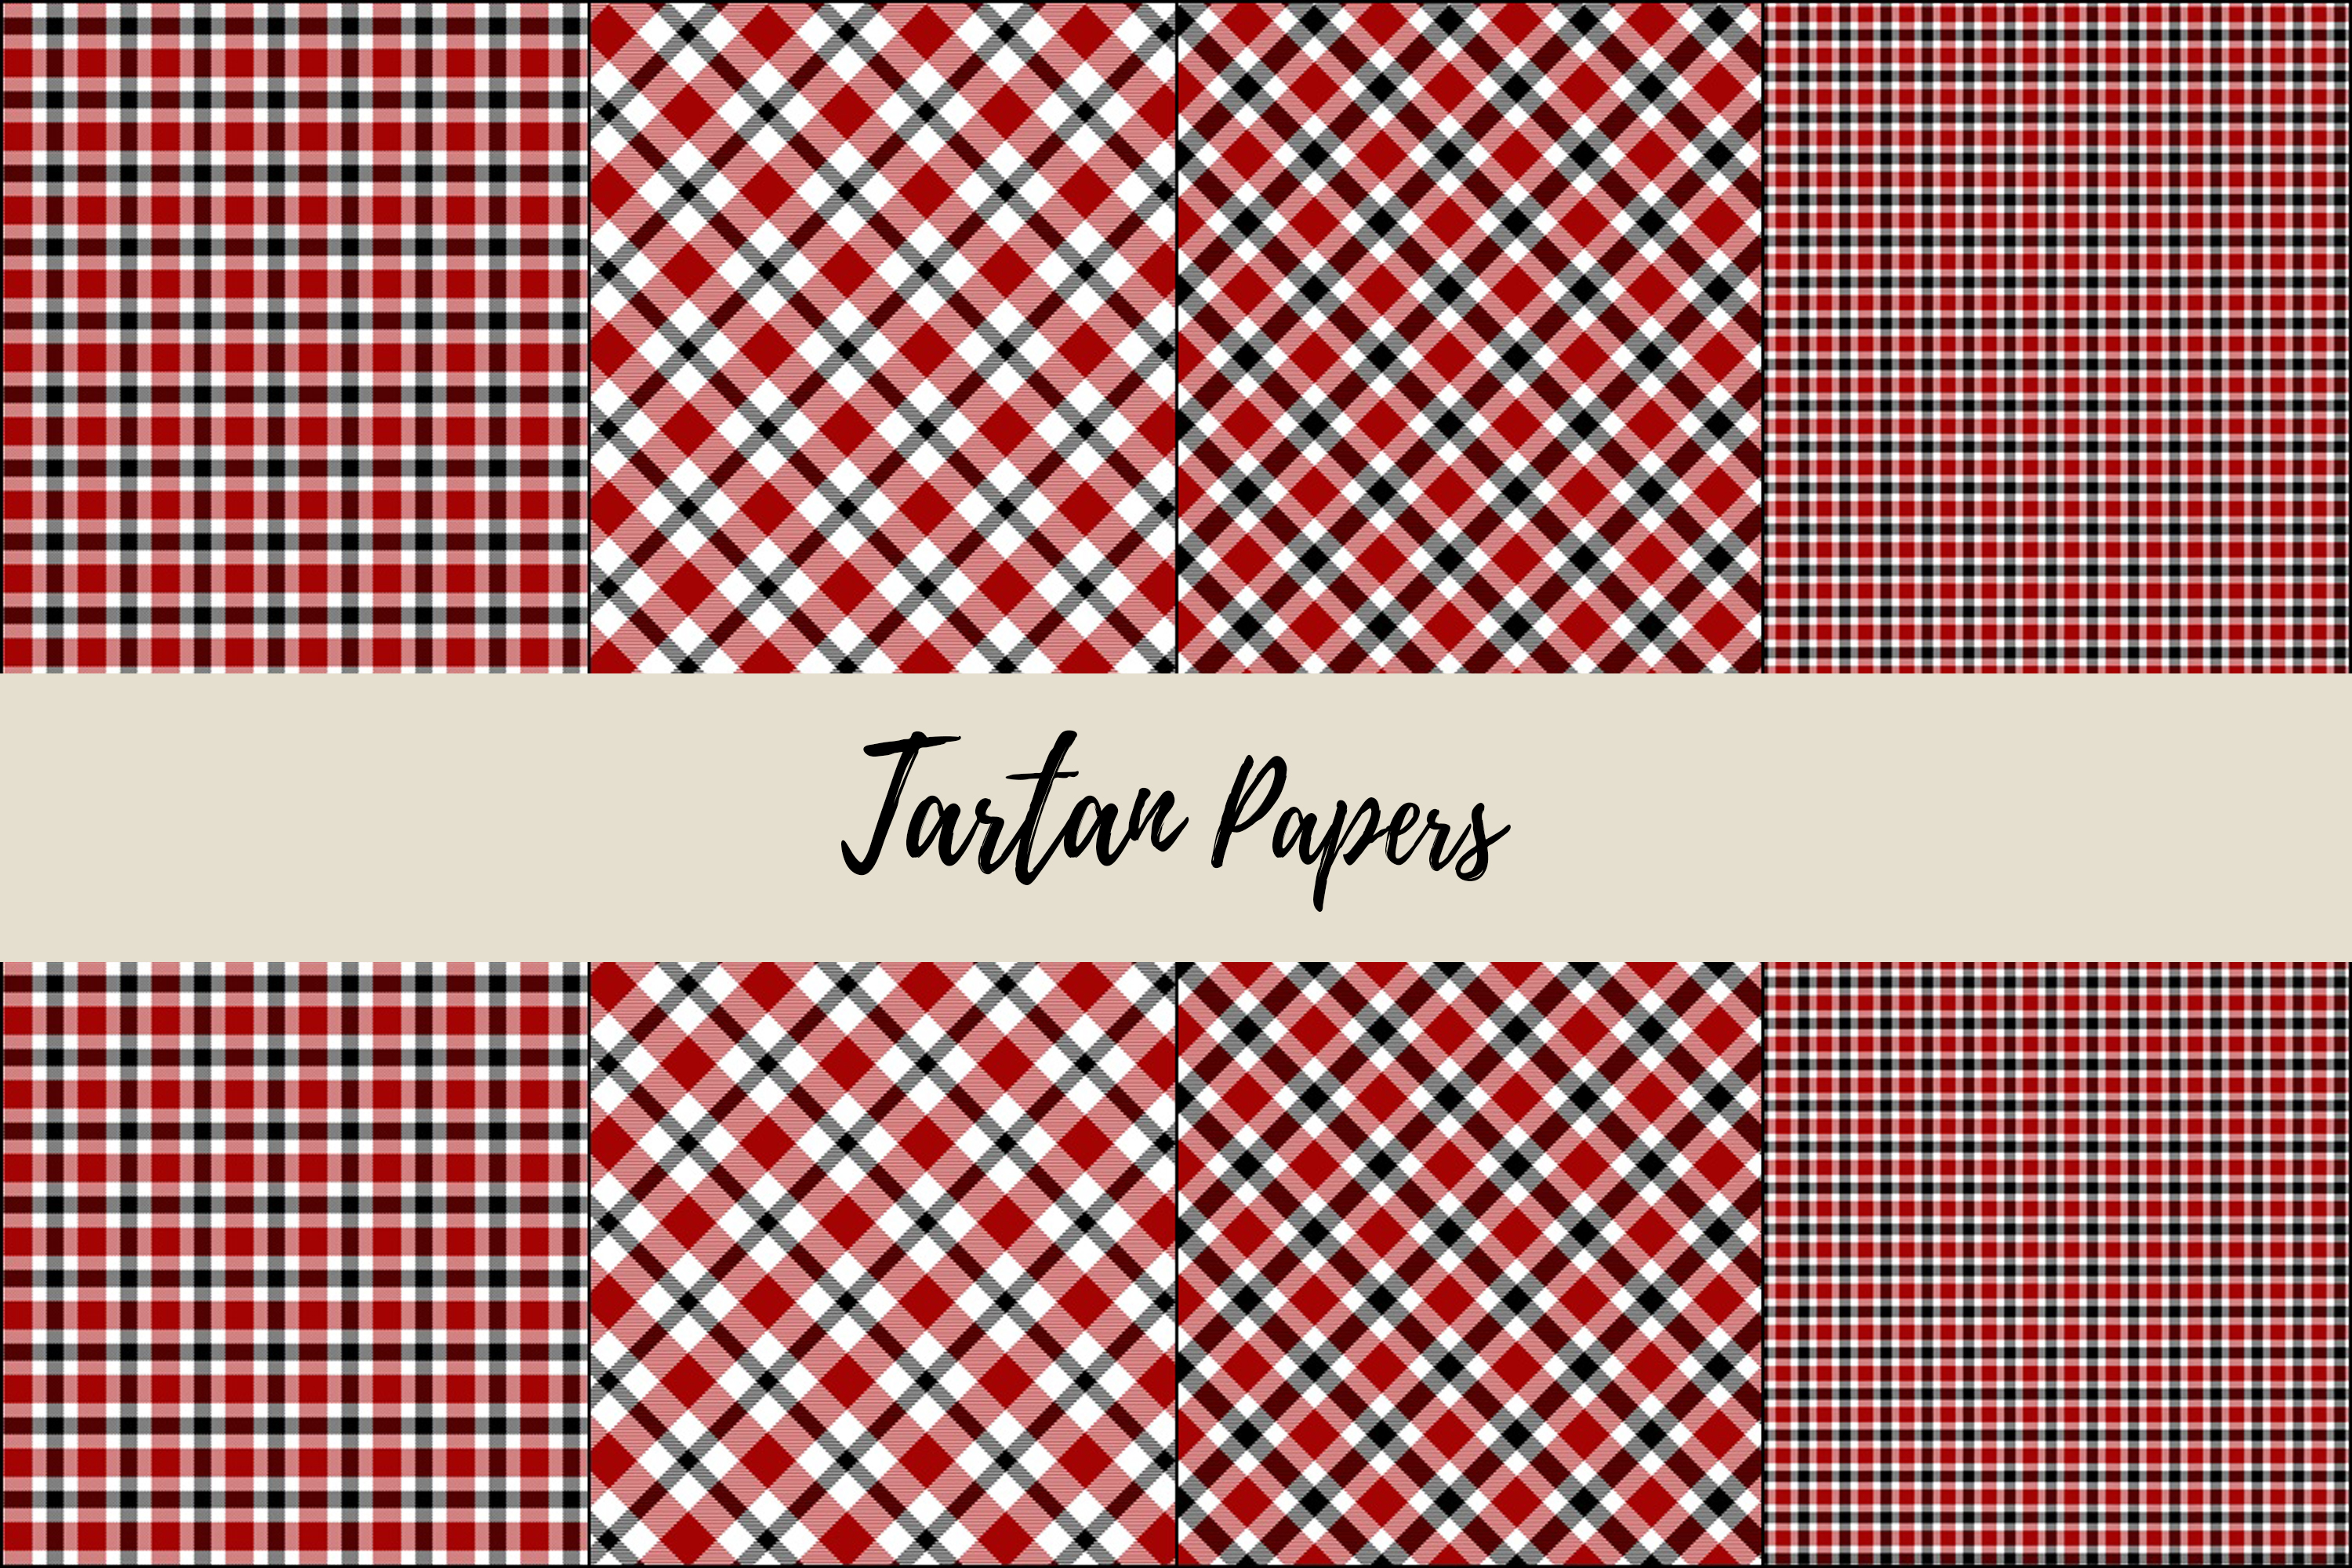 22 Black & Red Tartan Background Papers example image 5